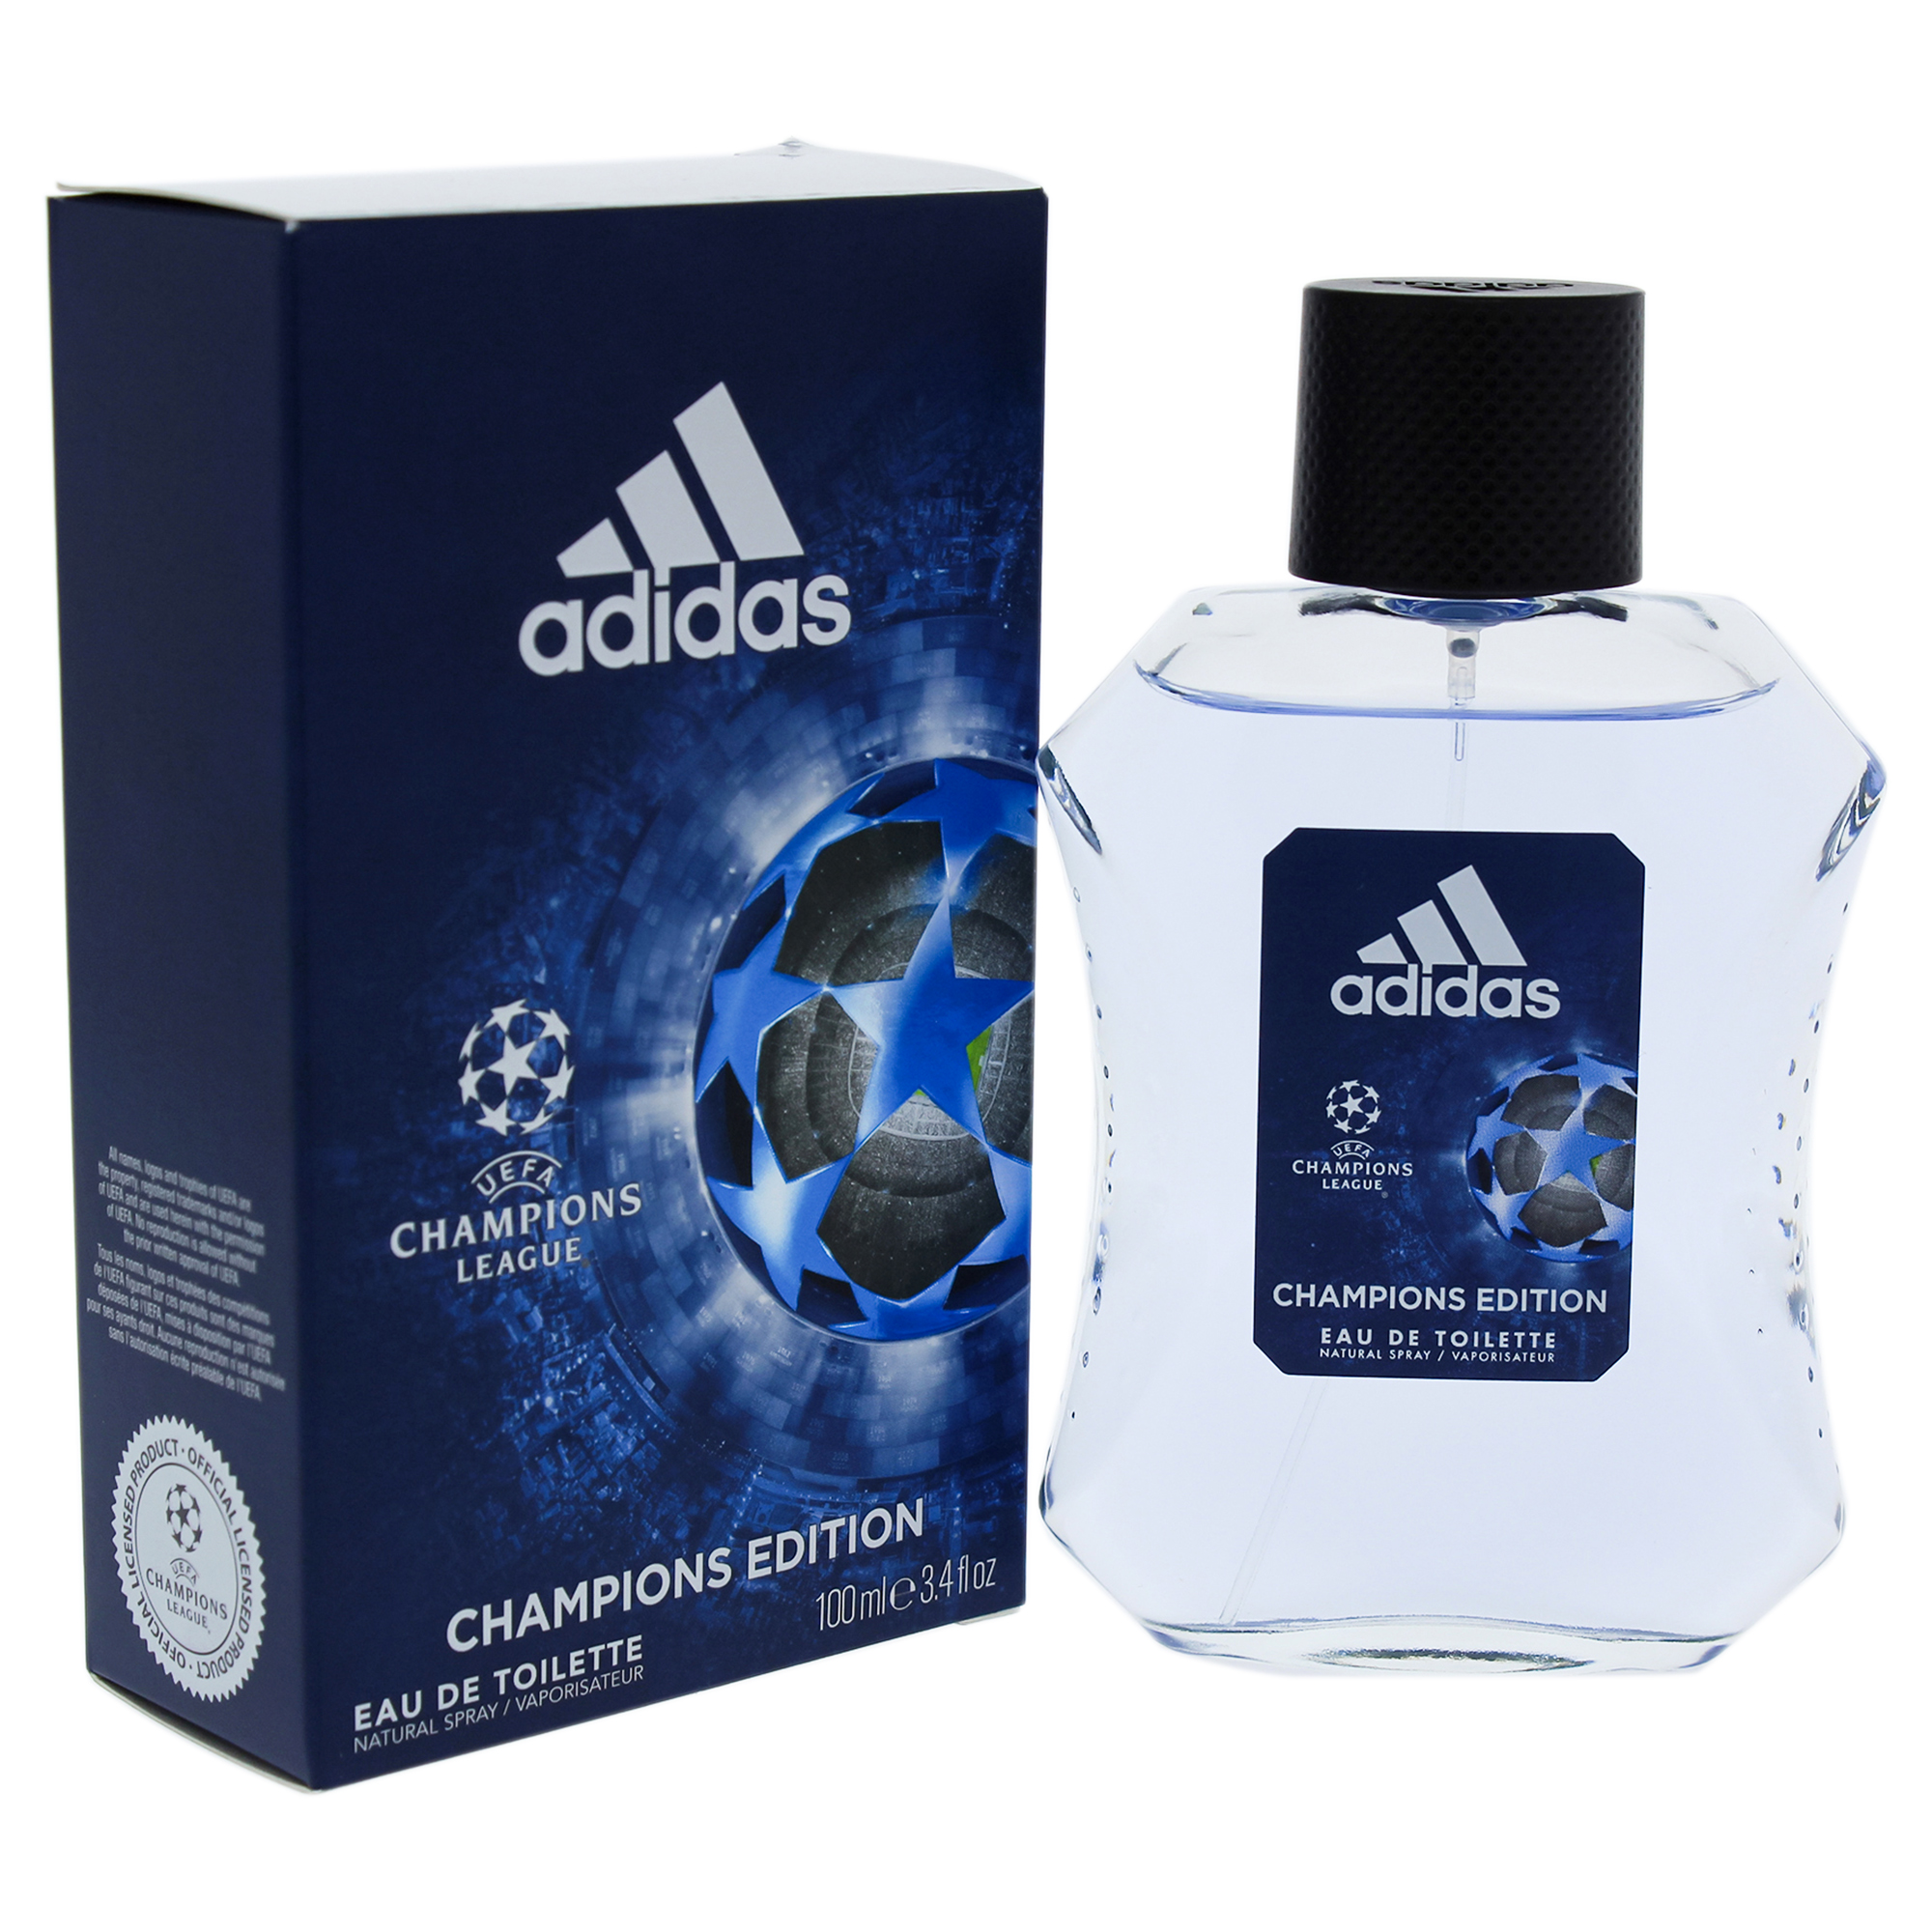 lucha paz proteger  UEFA Champions League by Adidas for Men - 3.4 oz EDT Spray (Champions  Edition) | Walmart Canada